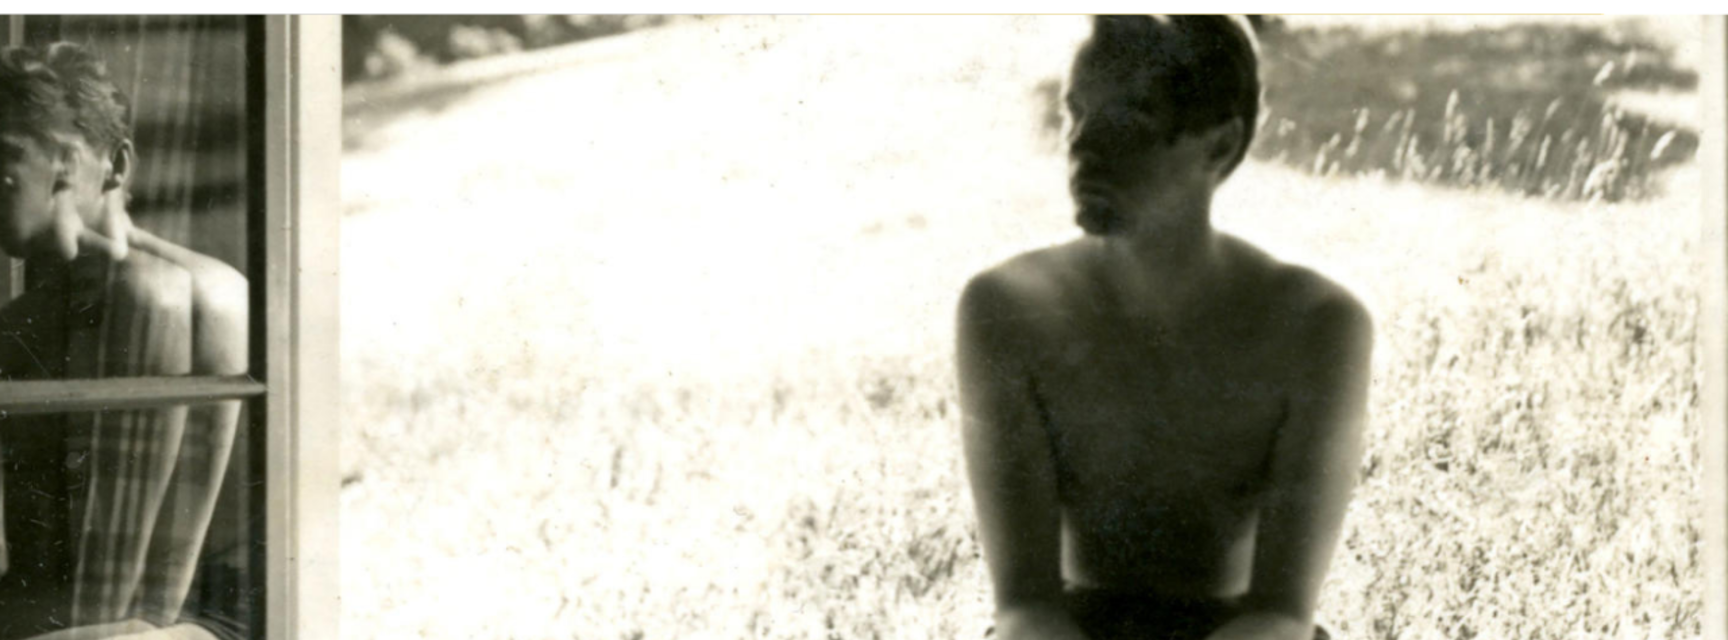 Black and white photo of a shirtless man sat in a doorway with grass behind him. His reflection is visible to his left.